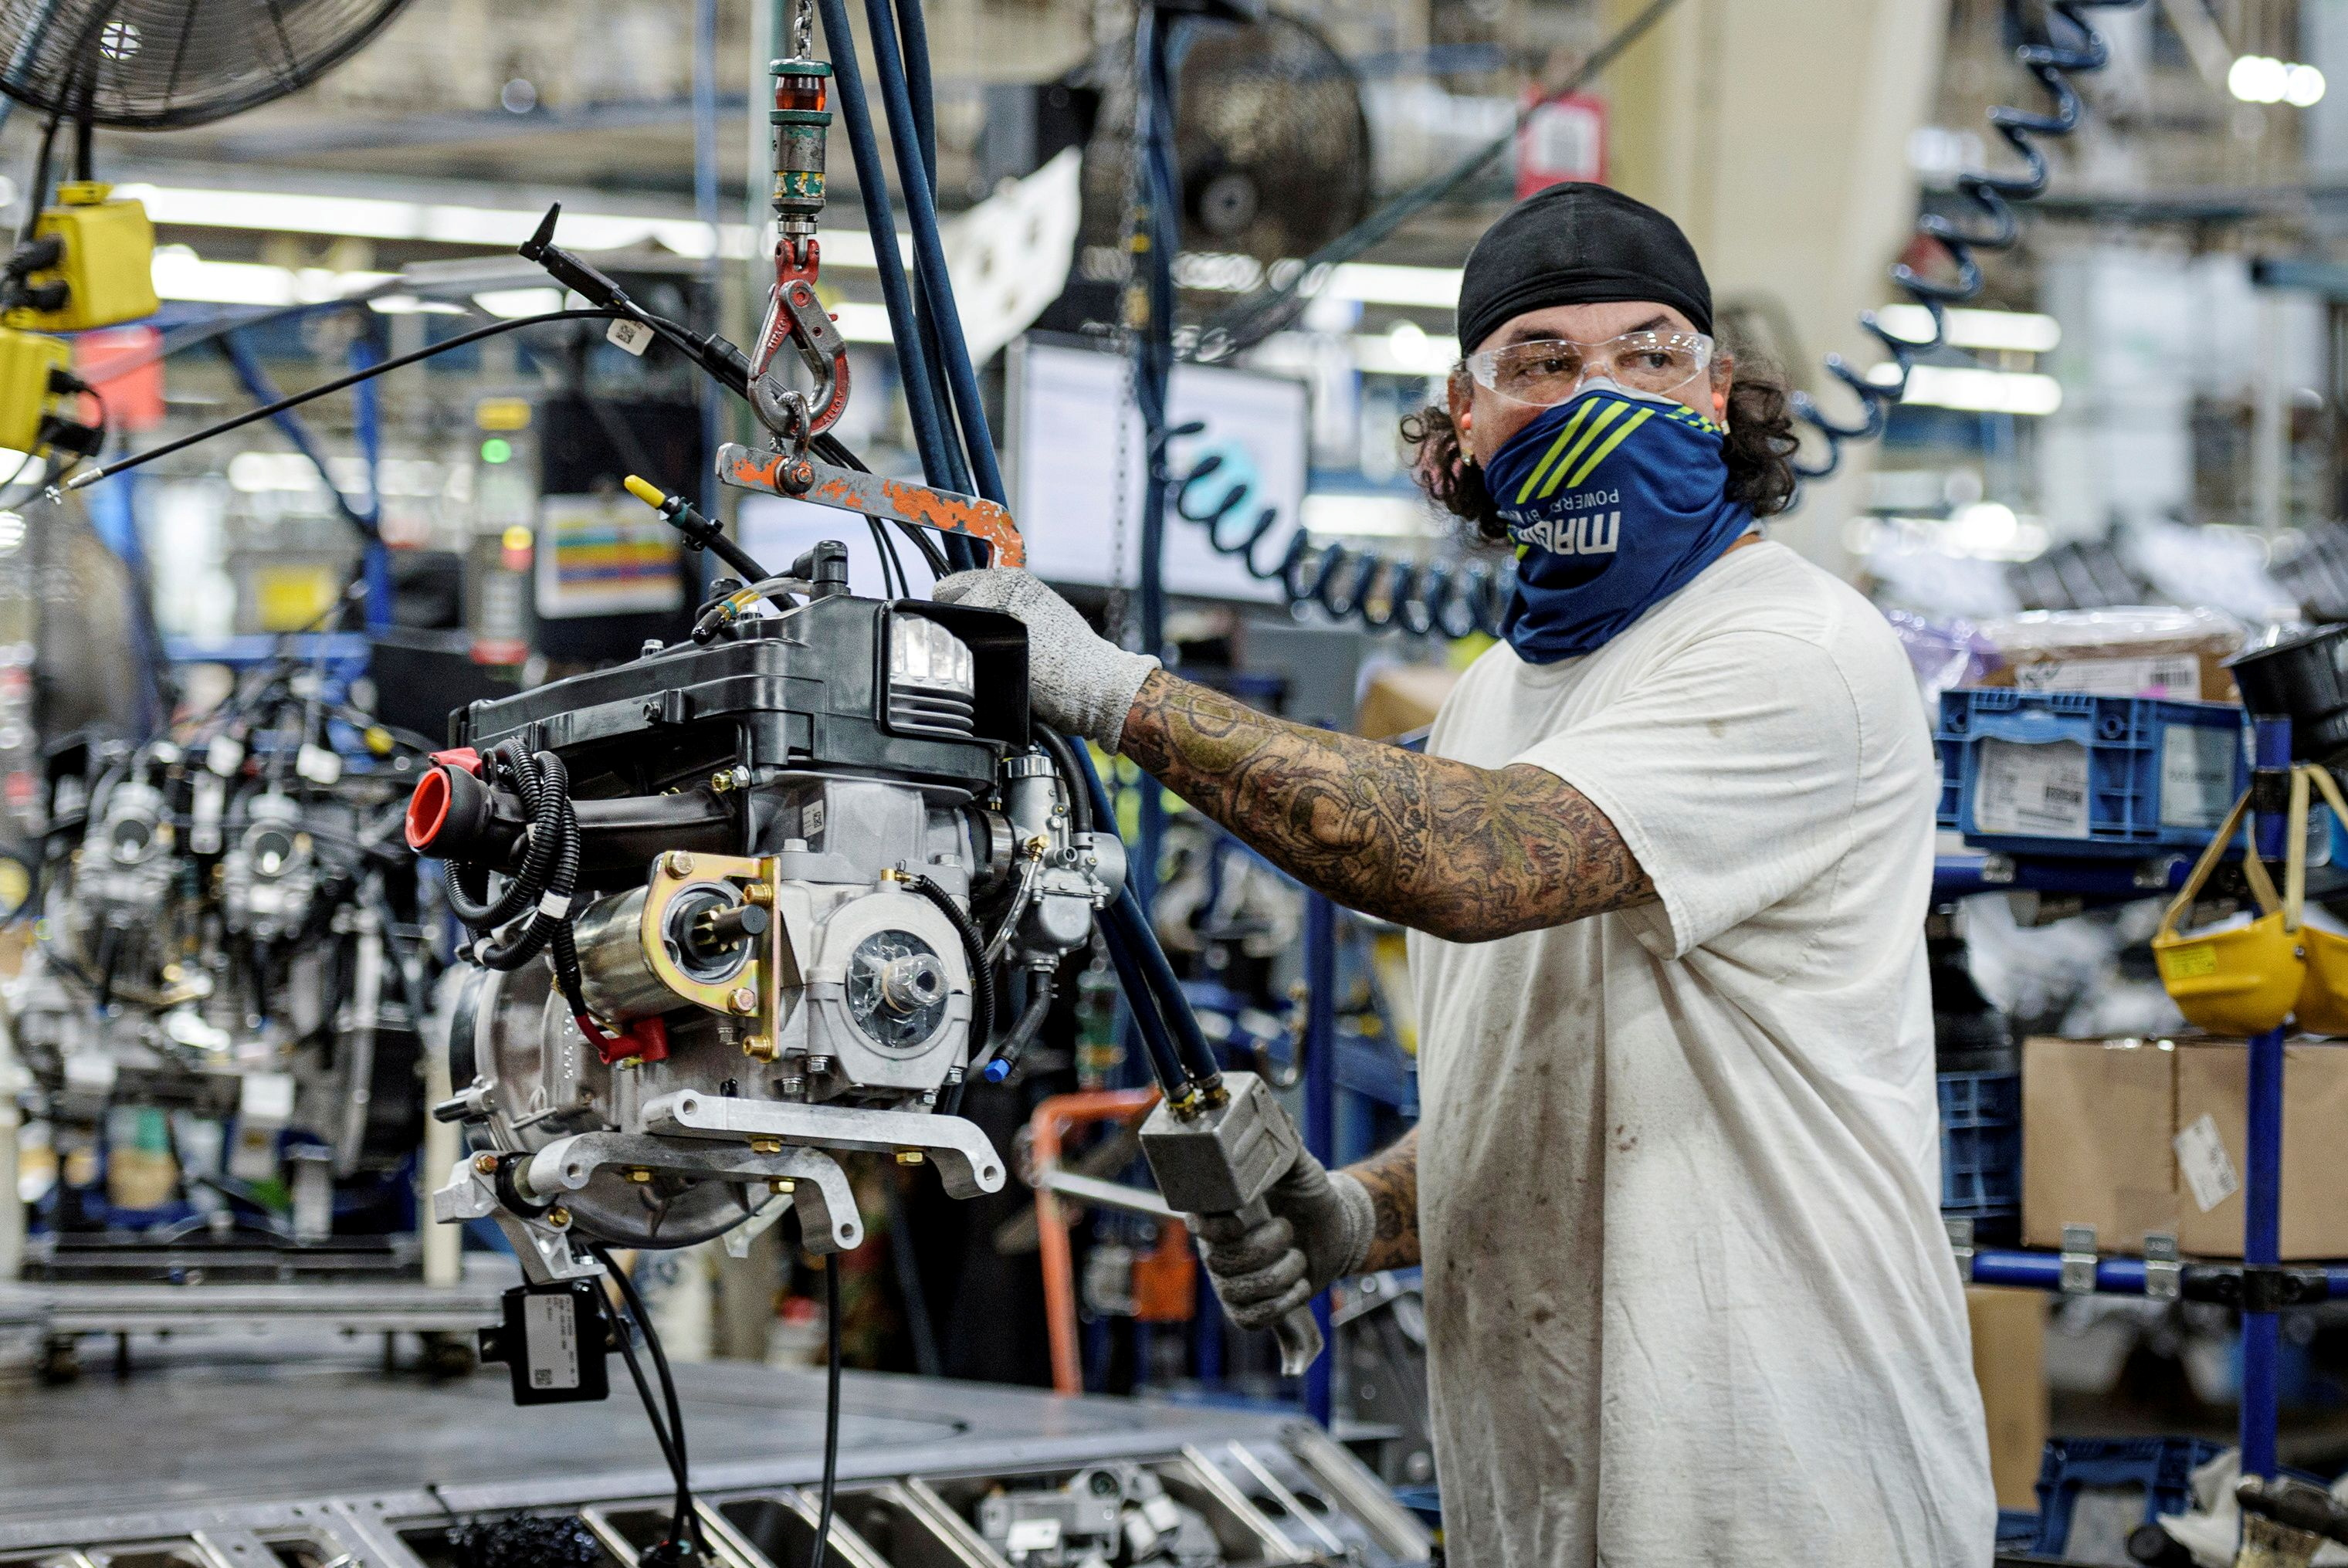 A person works on a Polaris snowmobile assembly line at their manufacturing and assembly plant in Roseau, Minnesota, U.S. June 7, 2021. Picture taken June 7, 2021.  REUTERS/Dan Koeck/File Photo